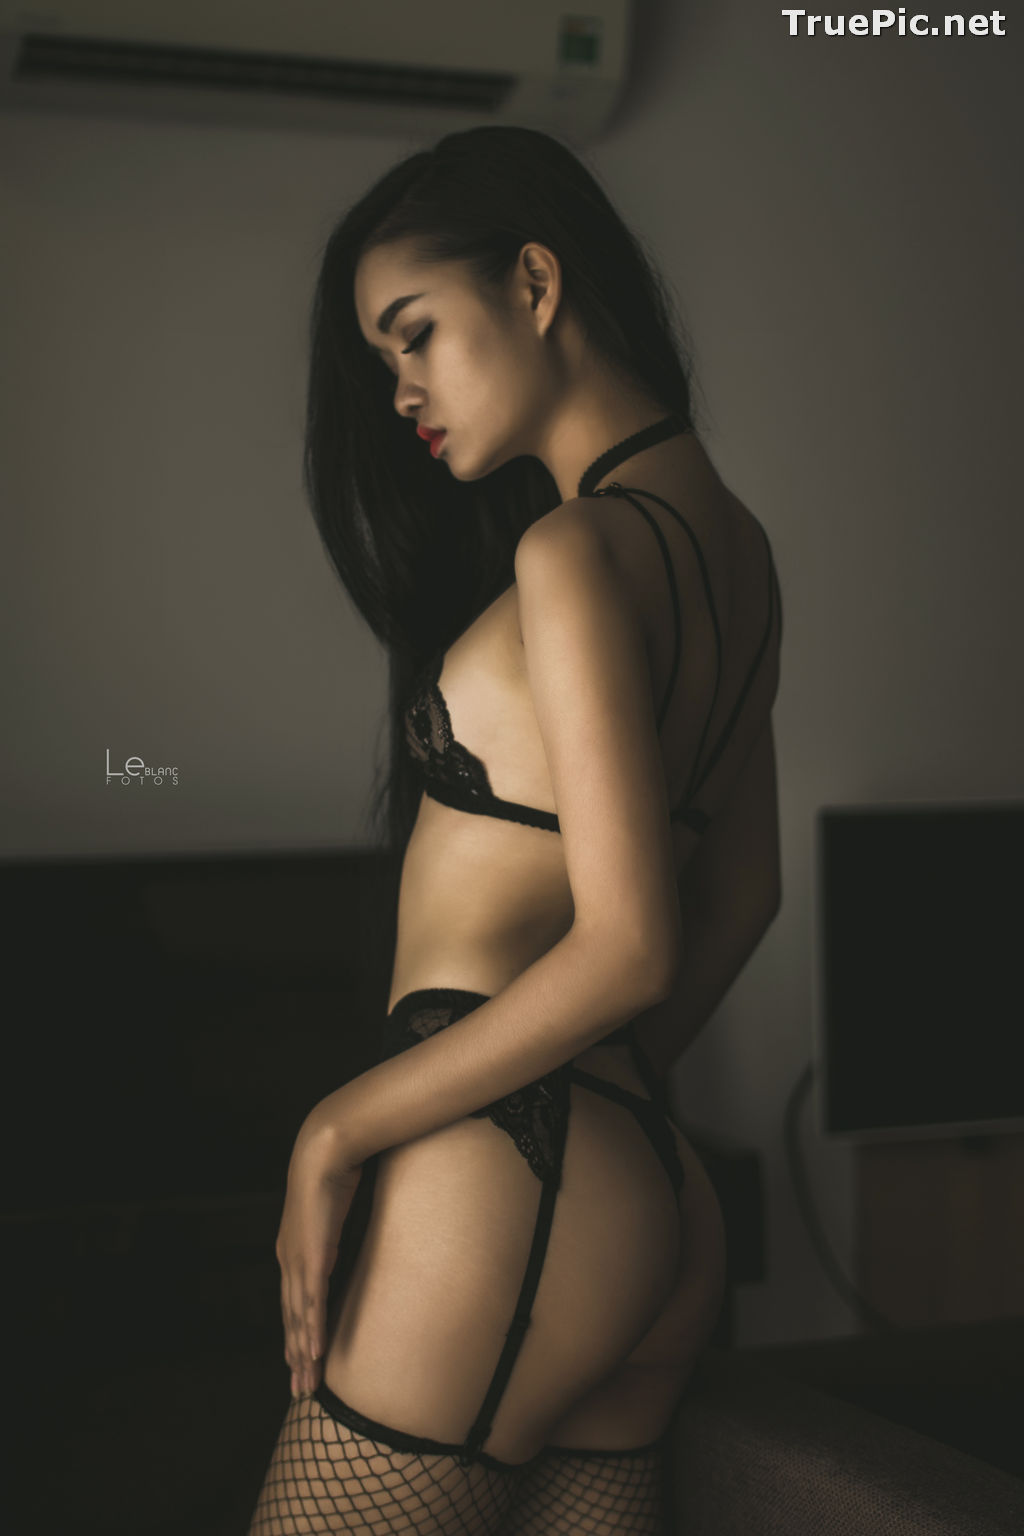 Image Vietnamese Beauties With Lingerie and Bikini – Photo by Le Blanc Studio #13 - TruePic.net - Picture-7